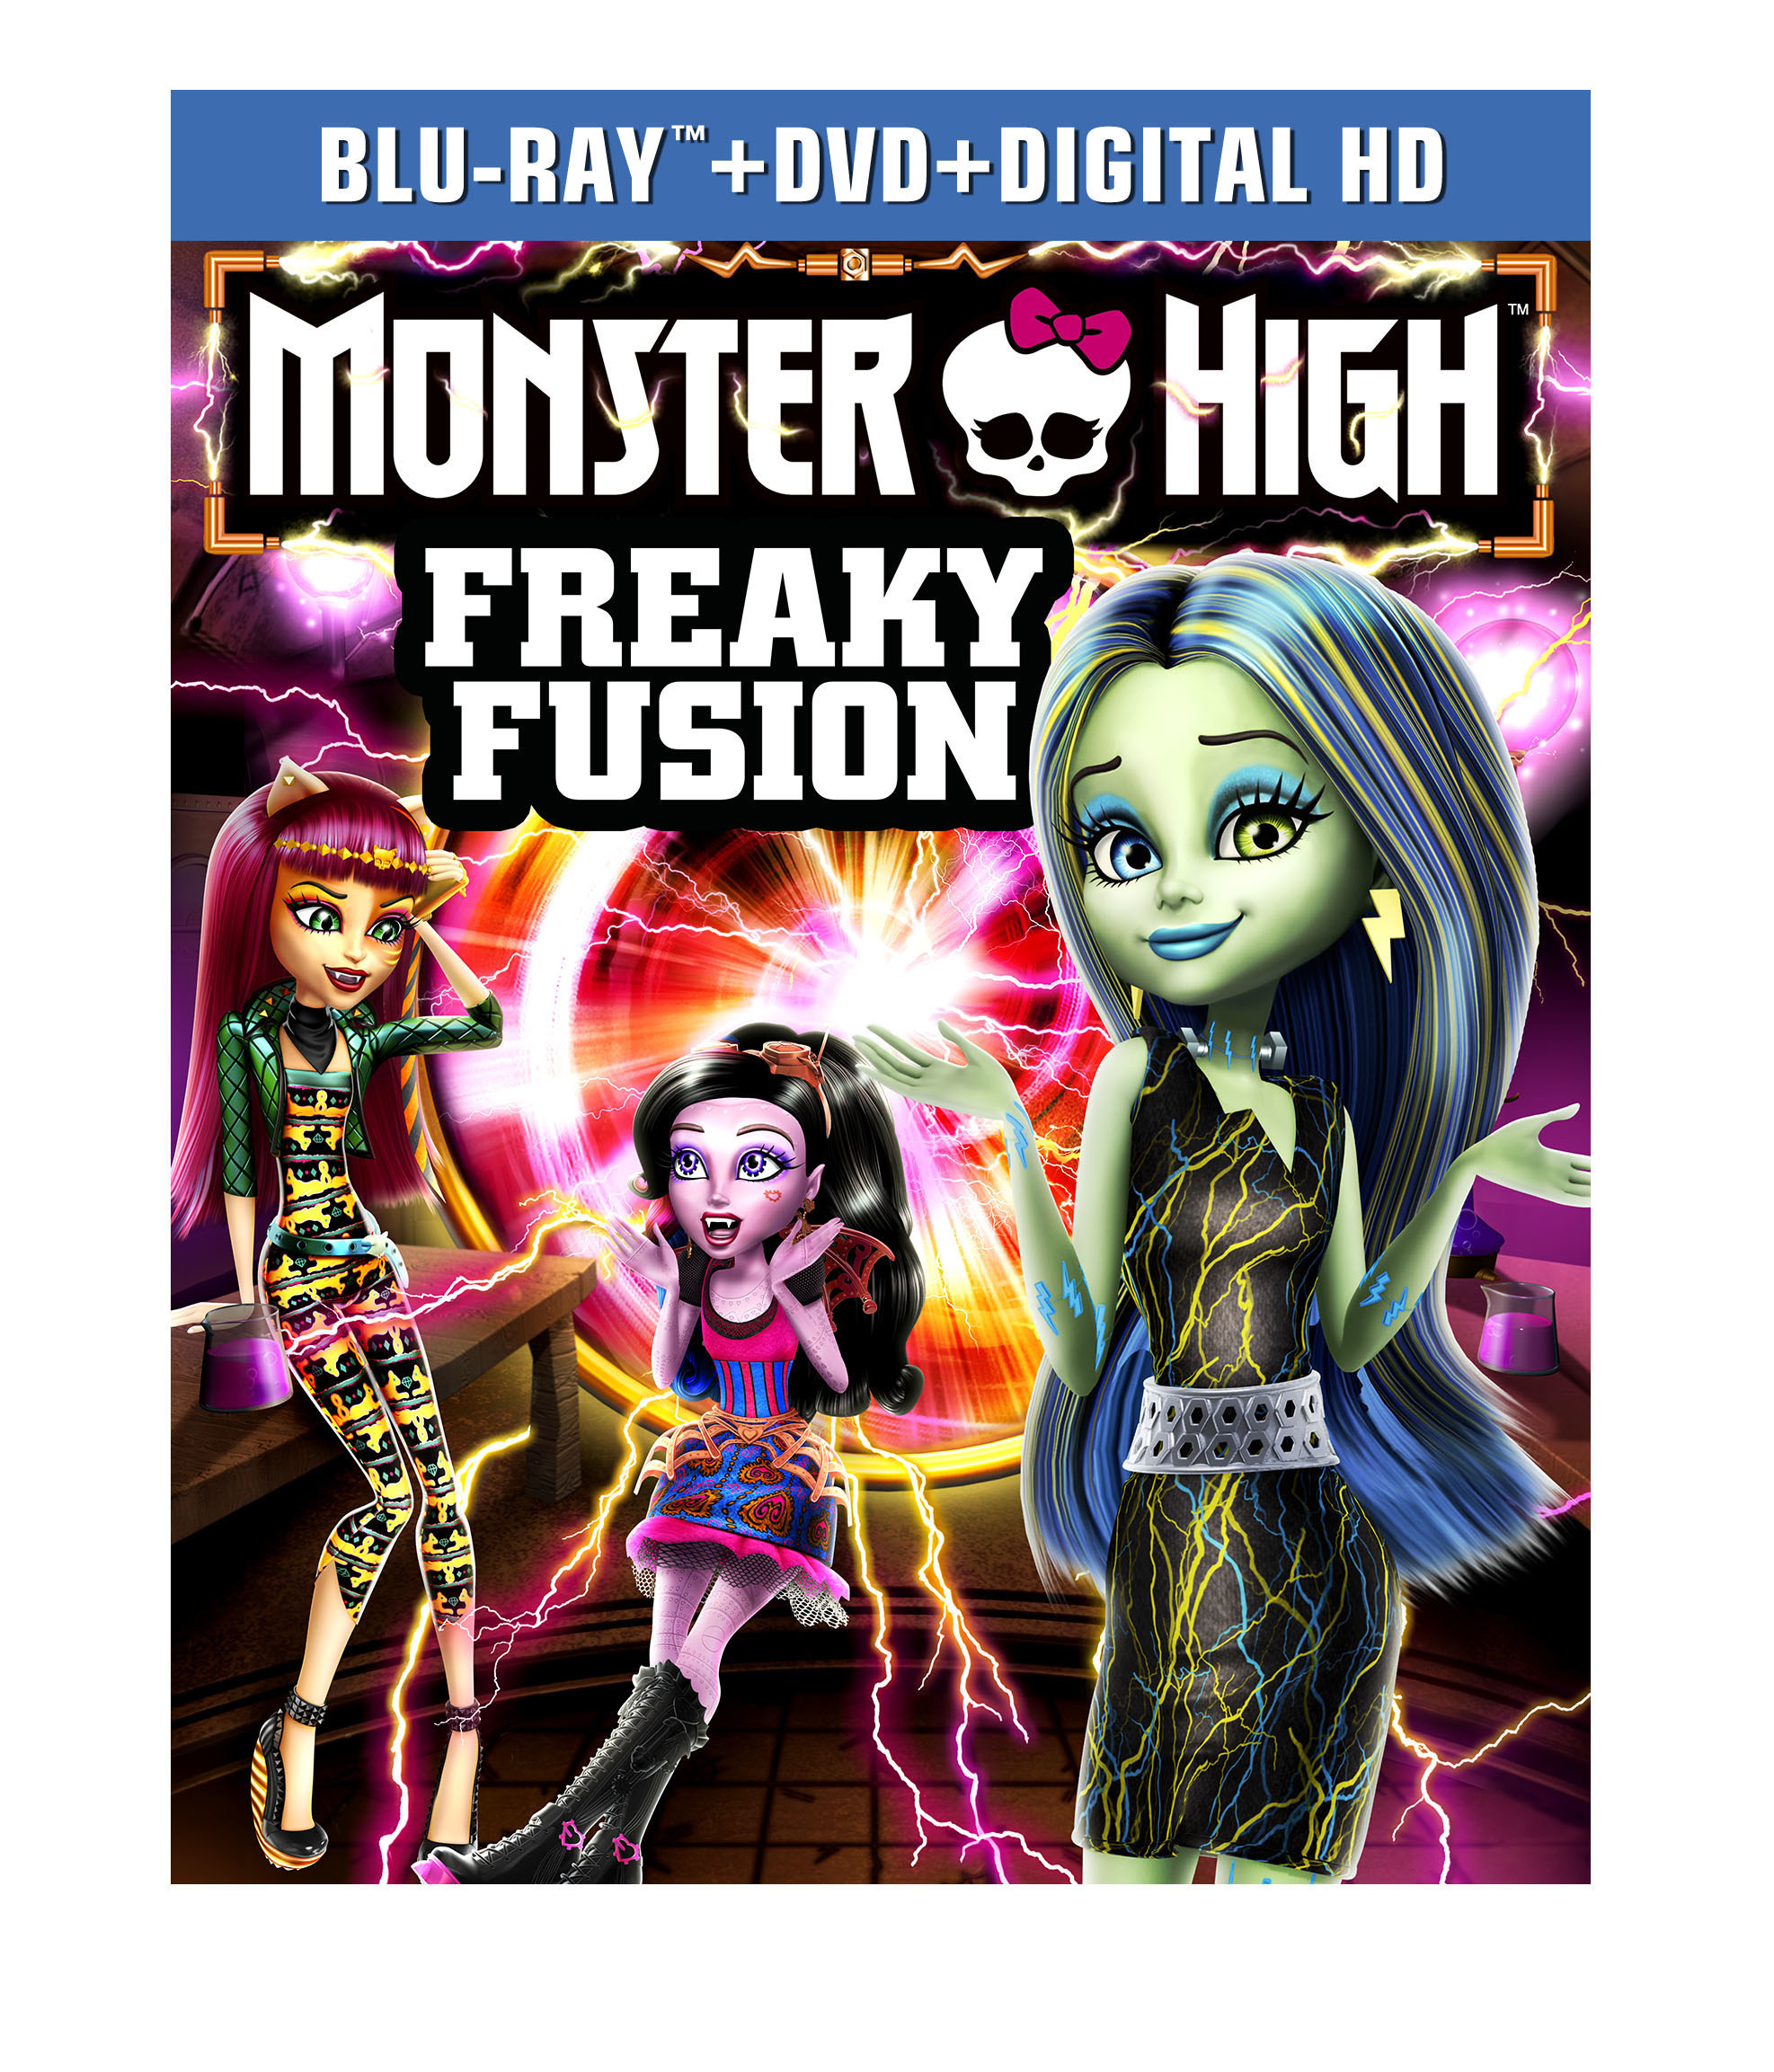 MONSTER HIGH: FREAKY FUSION Coming to DVD, Blue-Ray & Digital HD This September